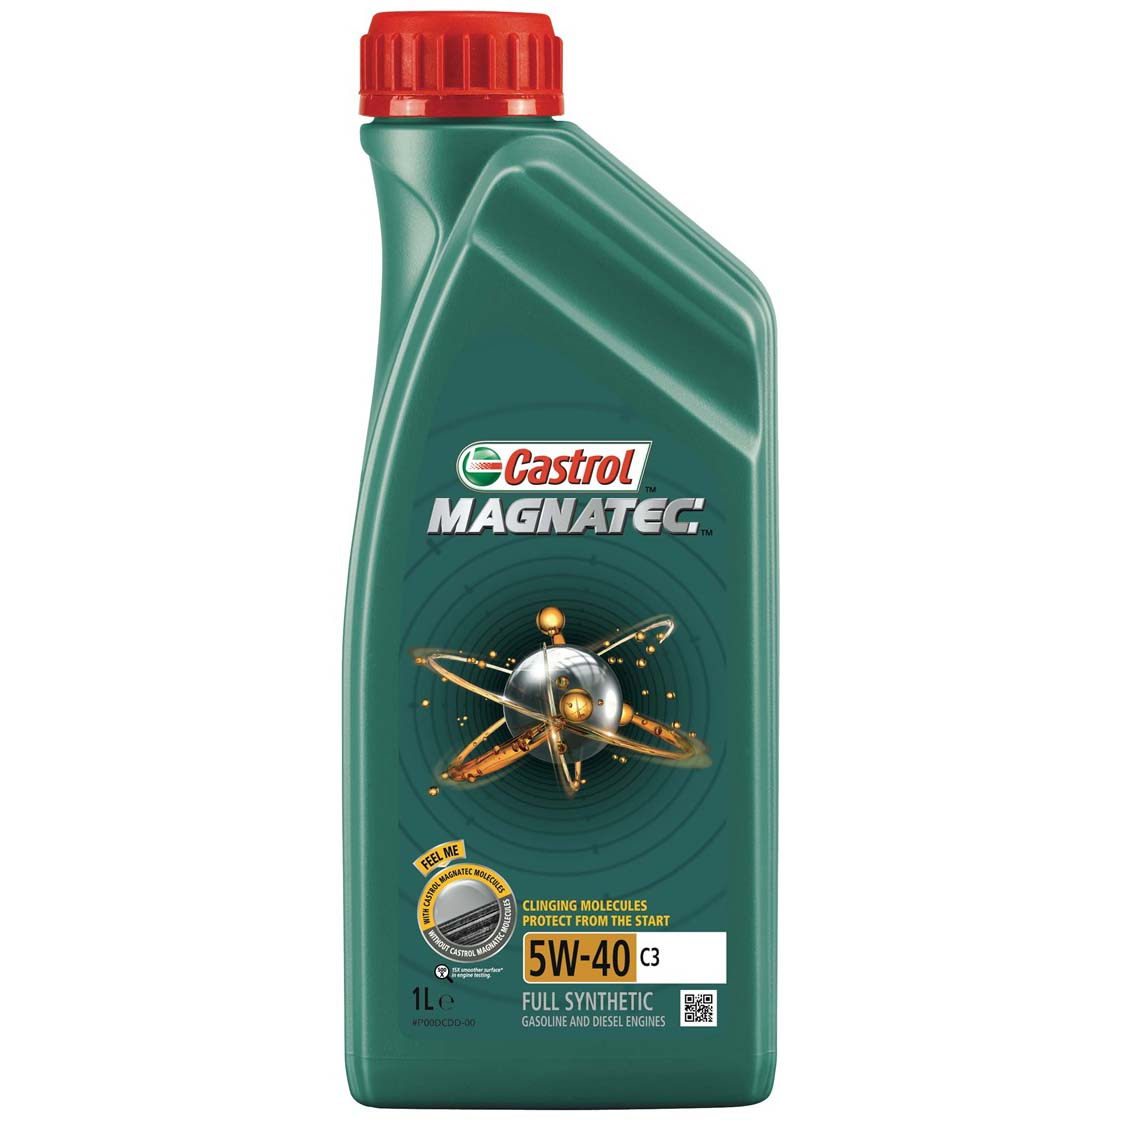 Castrol-Magnatec-Synthetic-Engine-Oil-For-Petrol-Diesel-Engines thumbnail 2